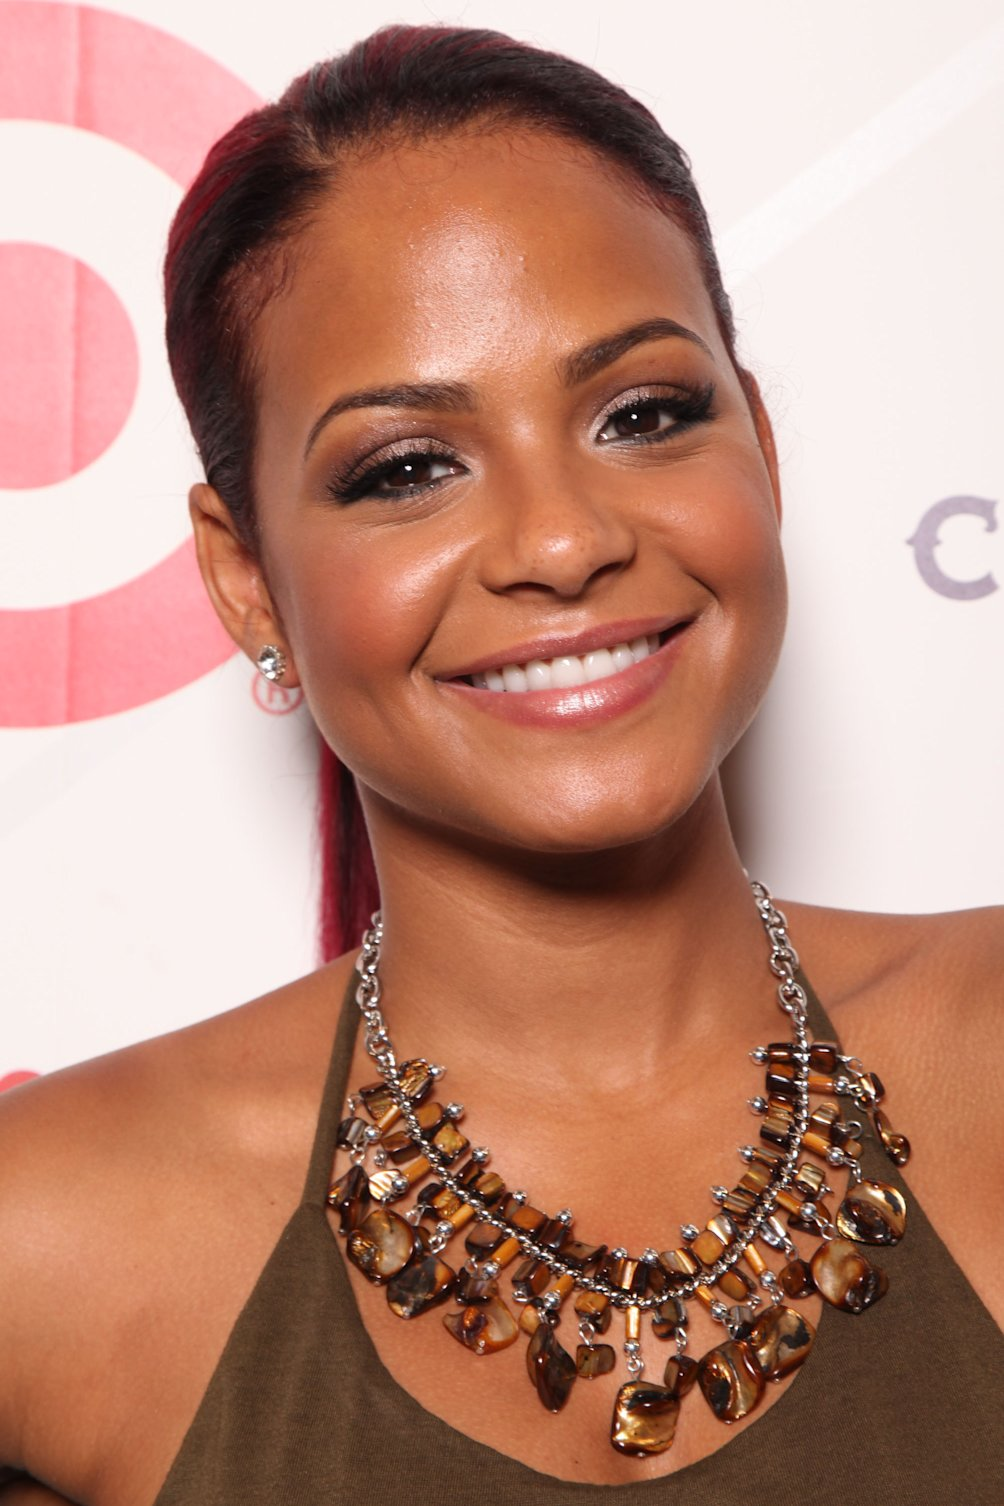 Christina Milian attends the 9th Annual Irie Weekend Celebrity Golf Tournament on Friday, June, 28, 2013 at Miami Beach Golf Club in Miami Beach, Fl. (Photo by Omar Vega/Invision/AP Images)